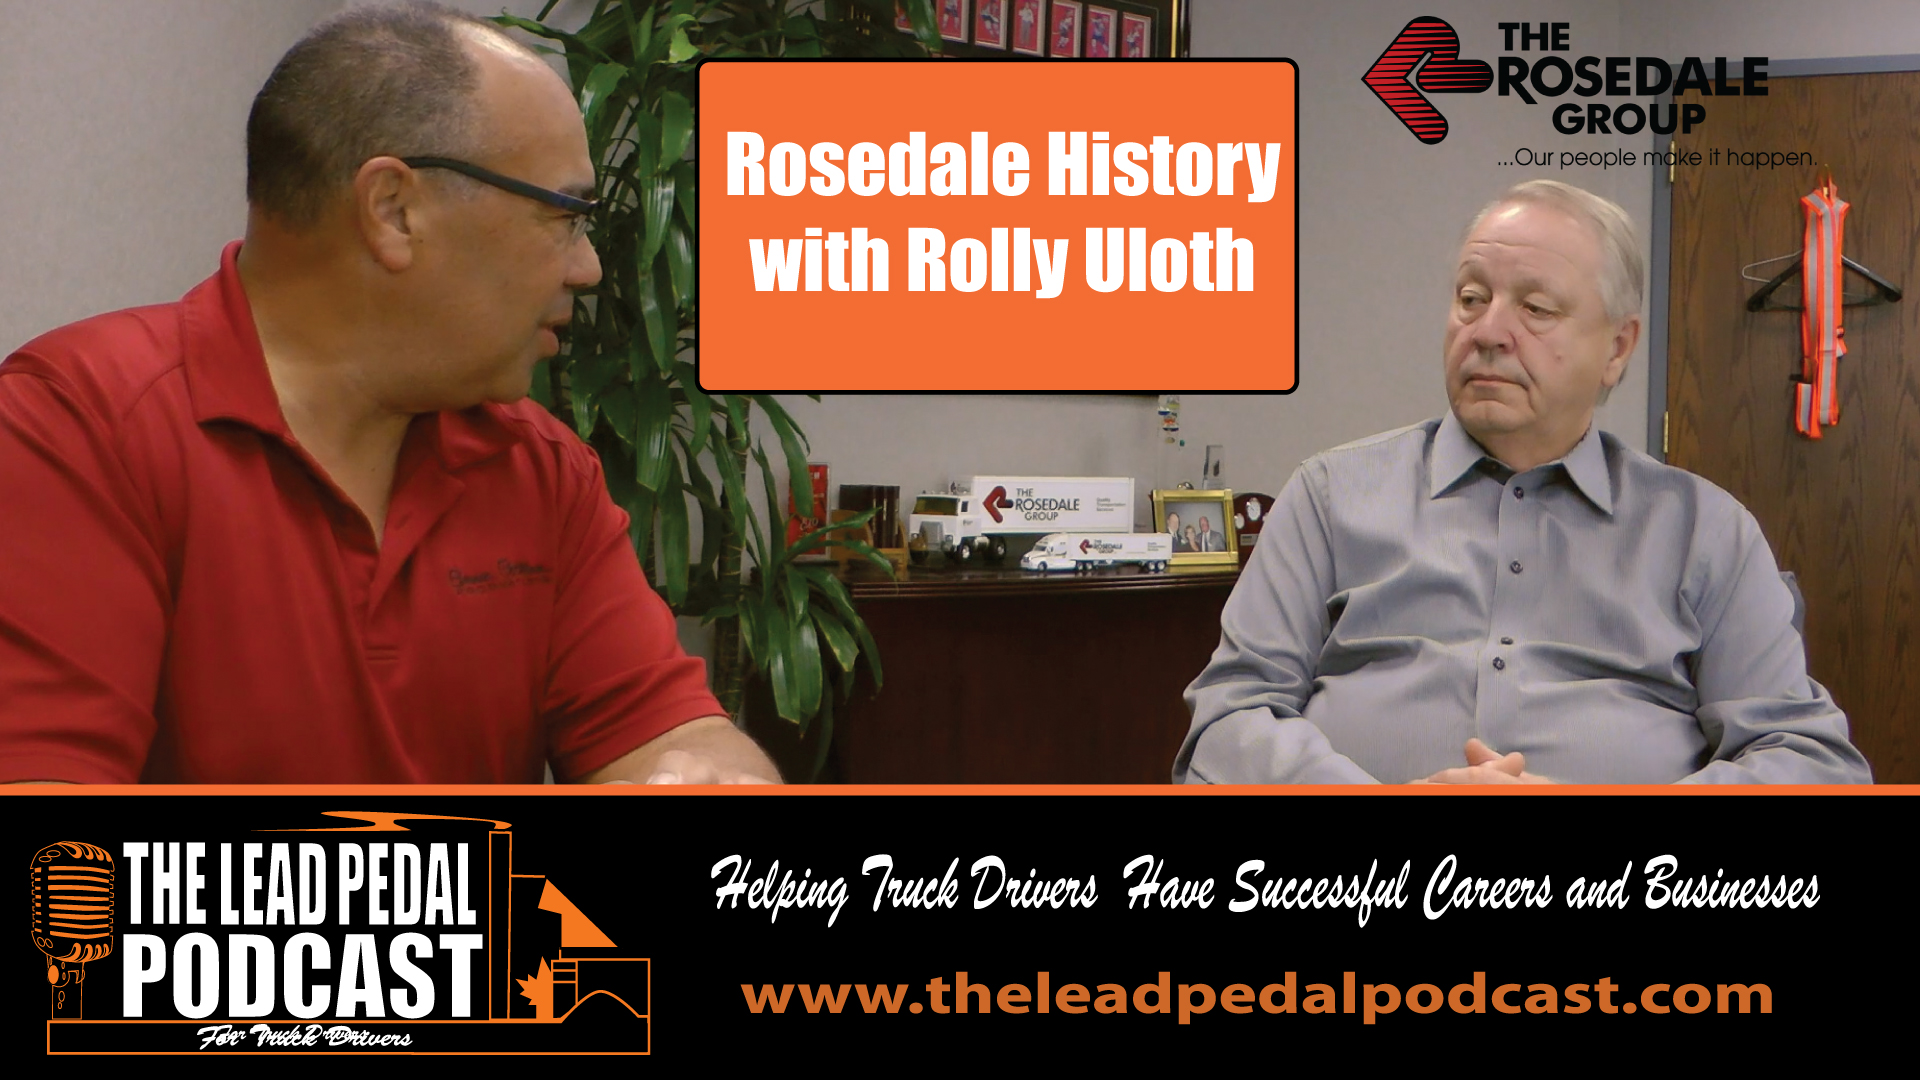 Building a Trucking Company With Rolly Uloth